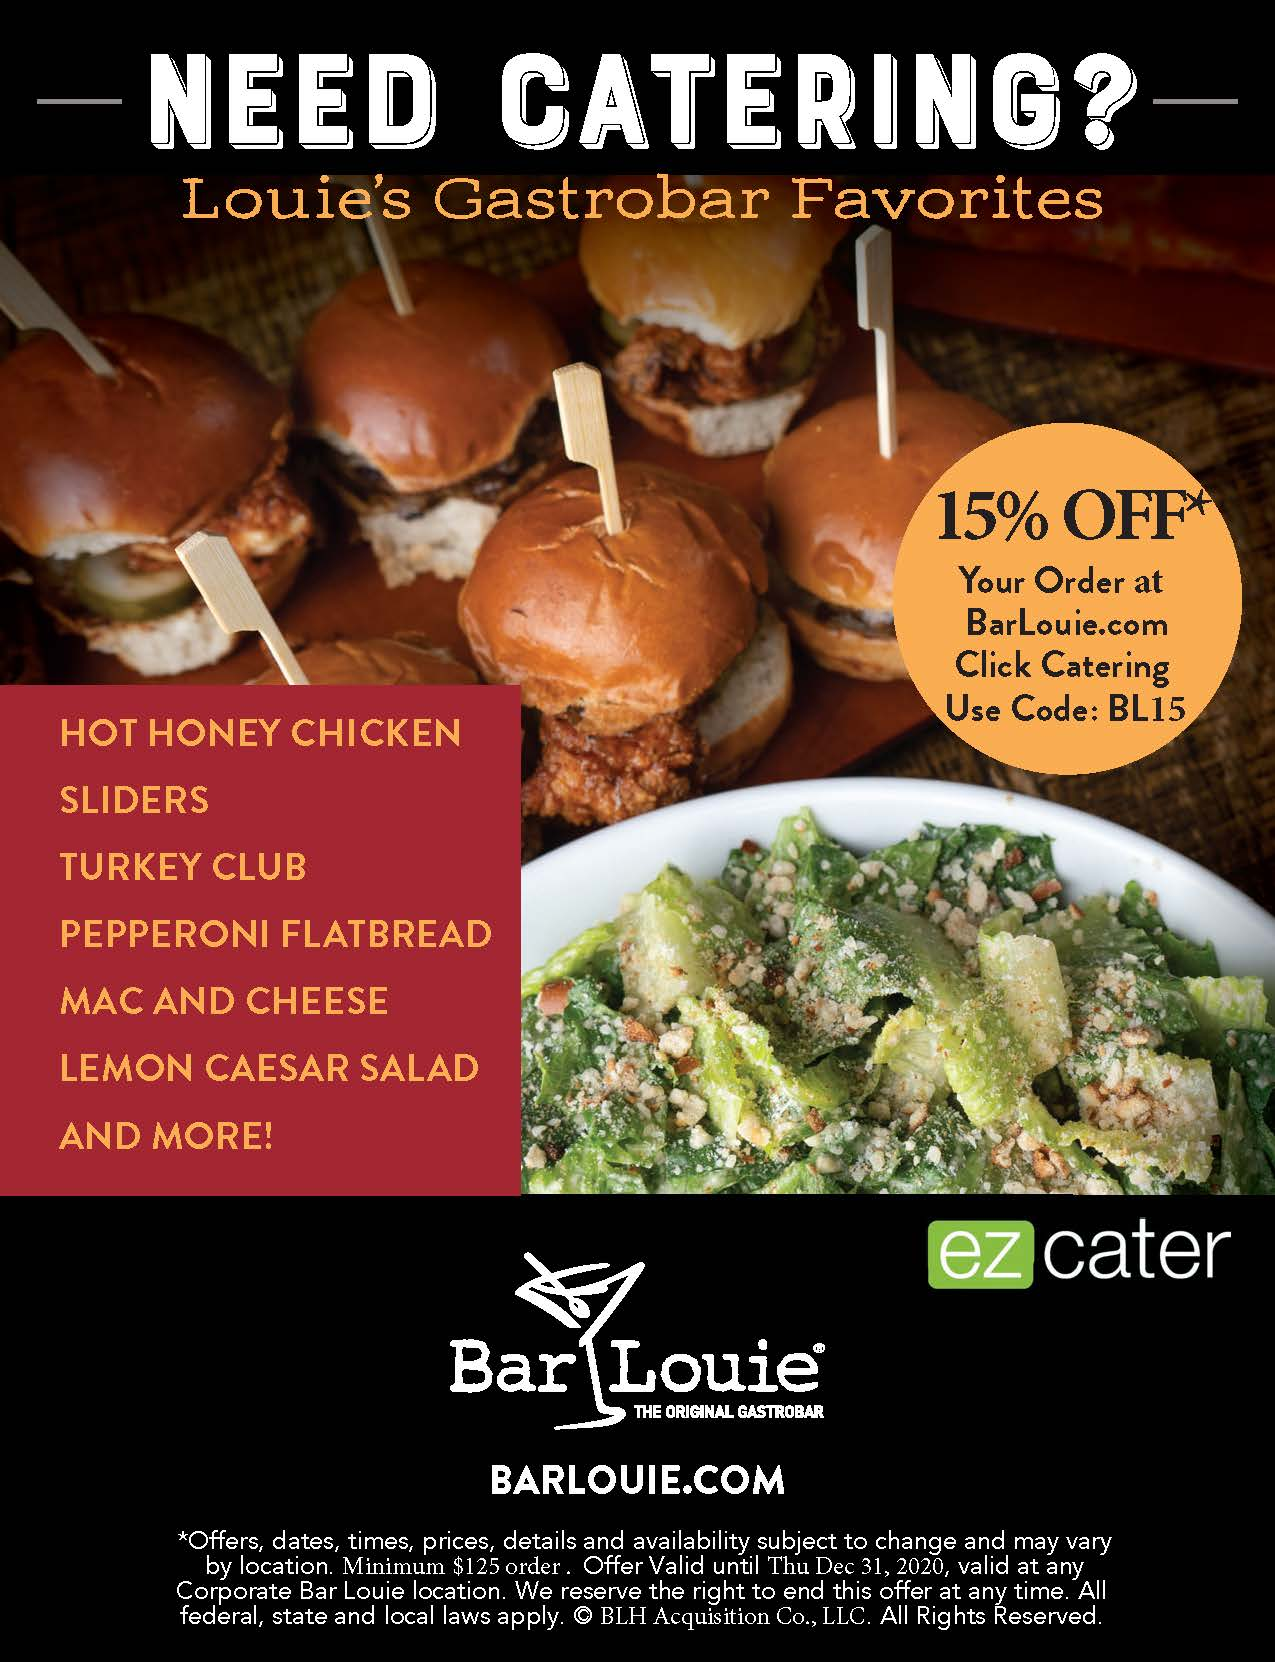 Need Catering? from Bar Louie